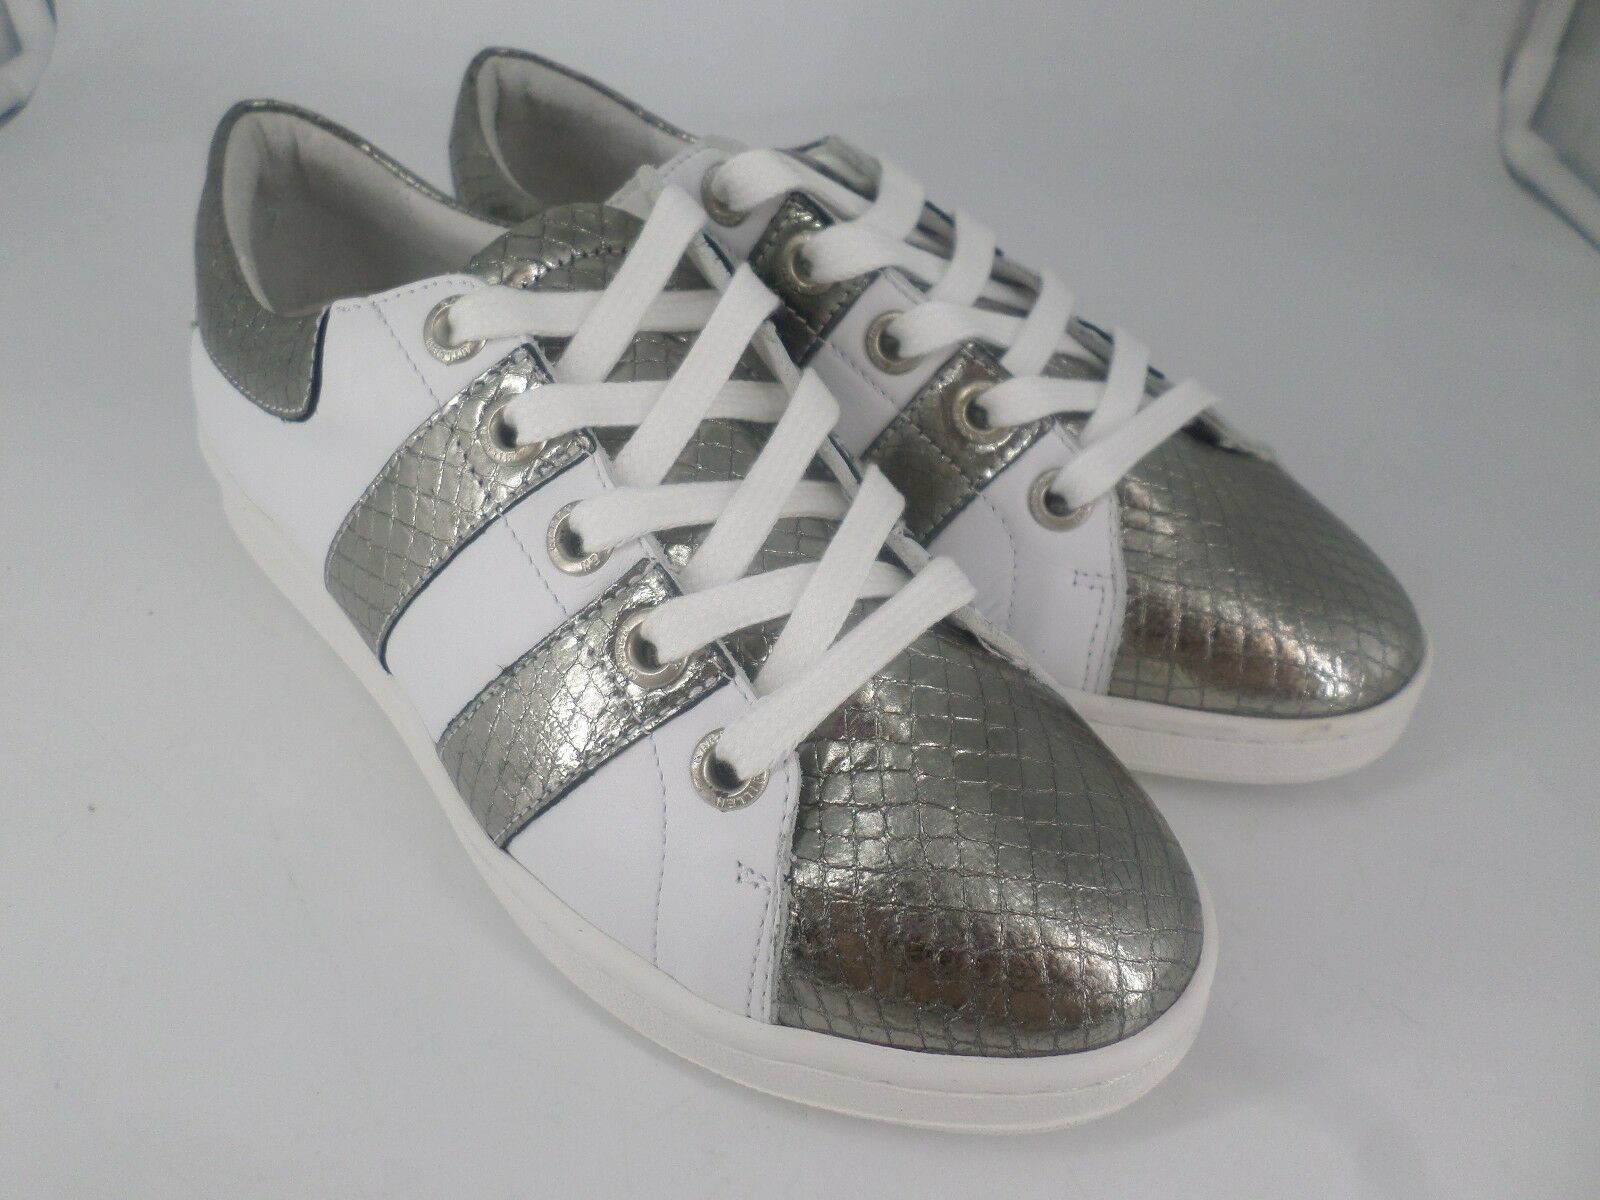 Karen Millen LEATHER TRAINERS Weiß MULTI   UK 5 EU 38 LN20 84 SALEx